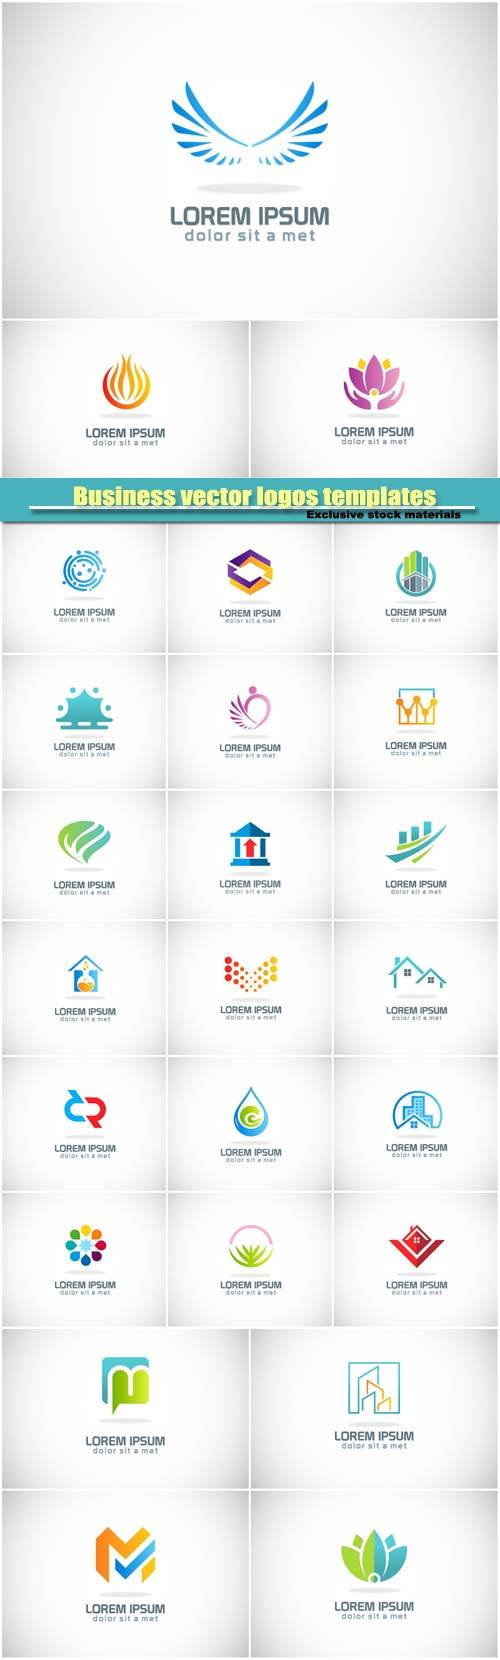 Business vector logos templates, creative figure icon #4